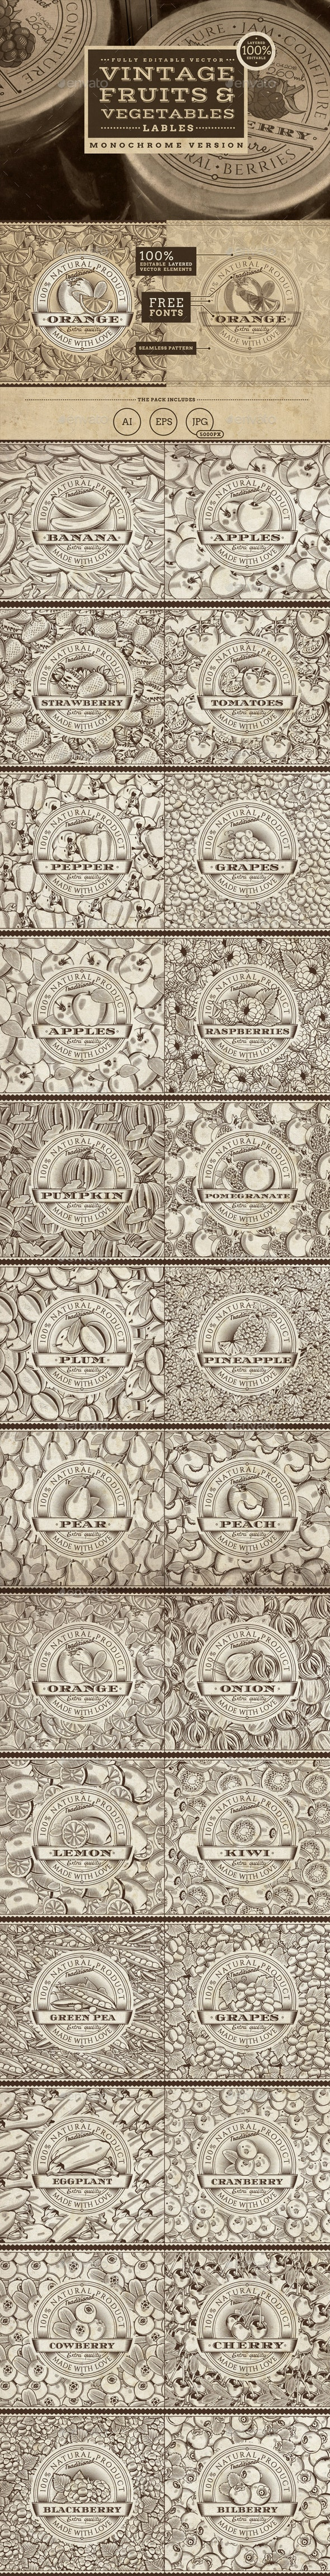 Vintage Fruits & Vegetables Labels - Organic Objects Objects